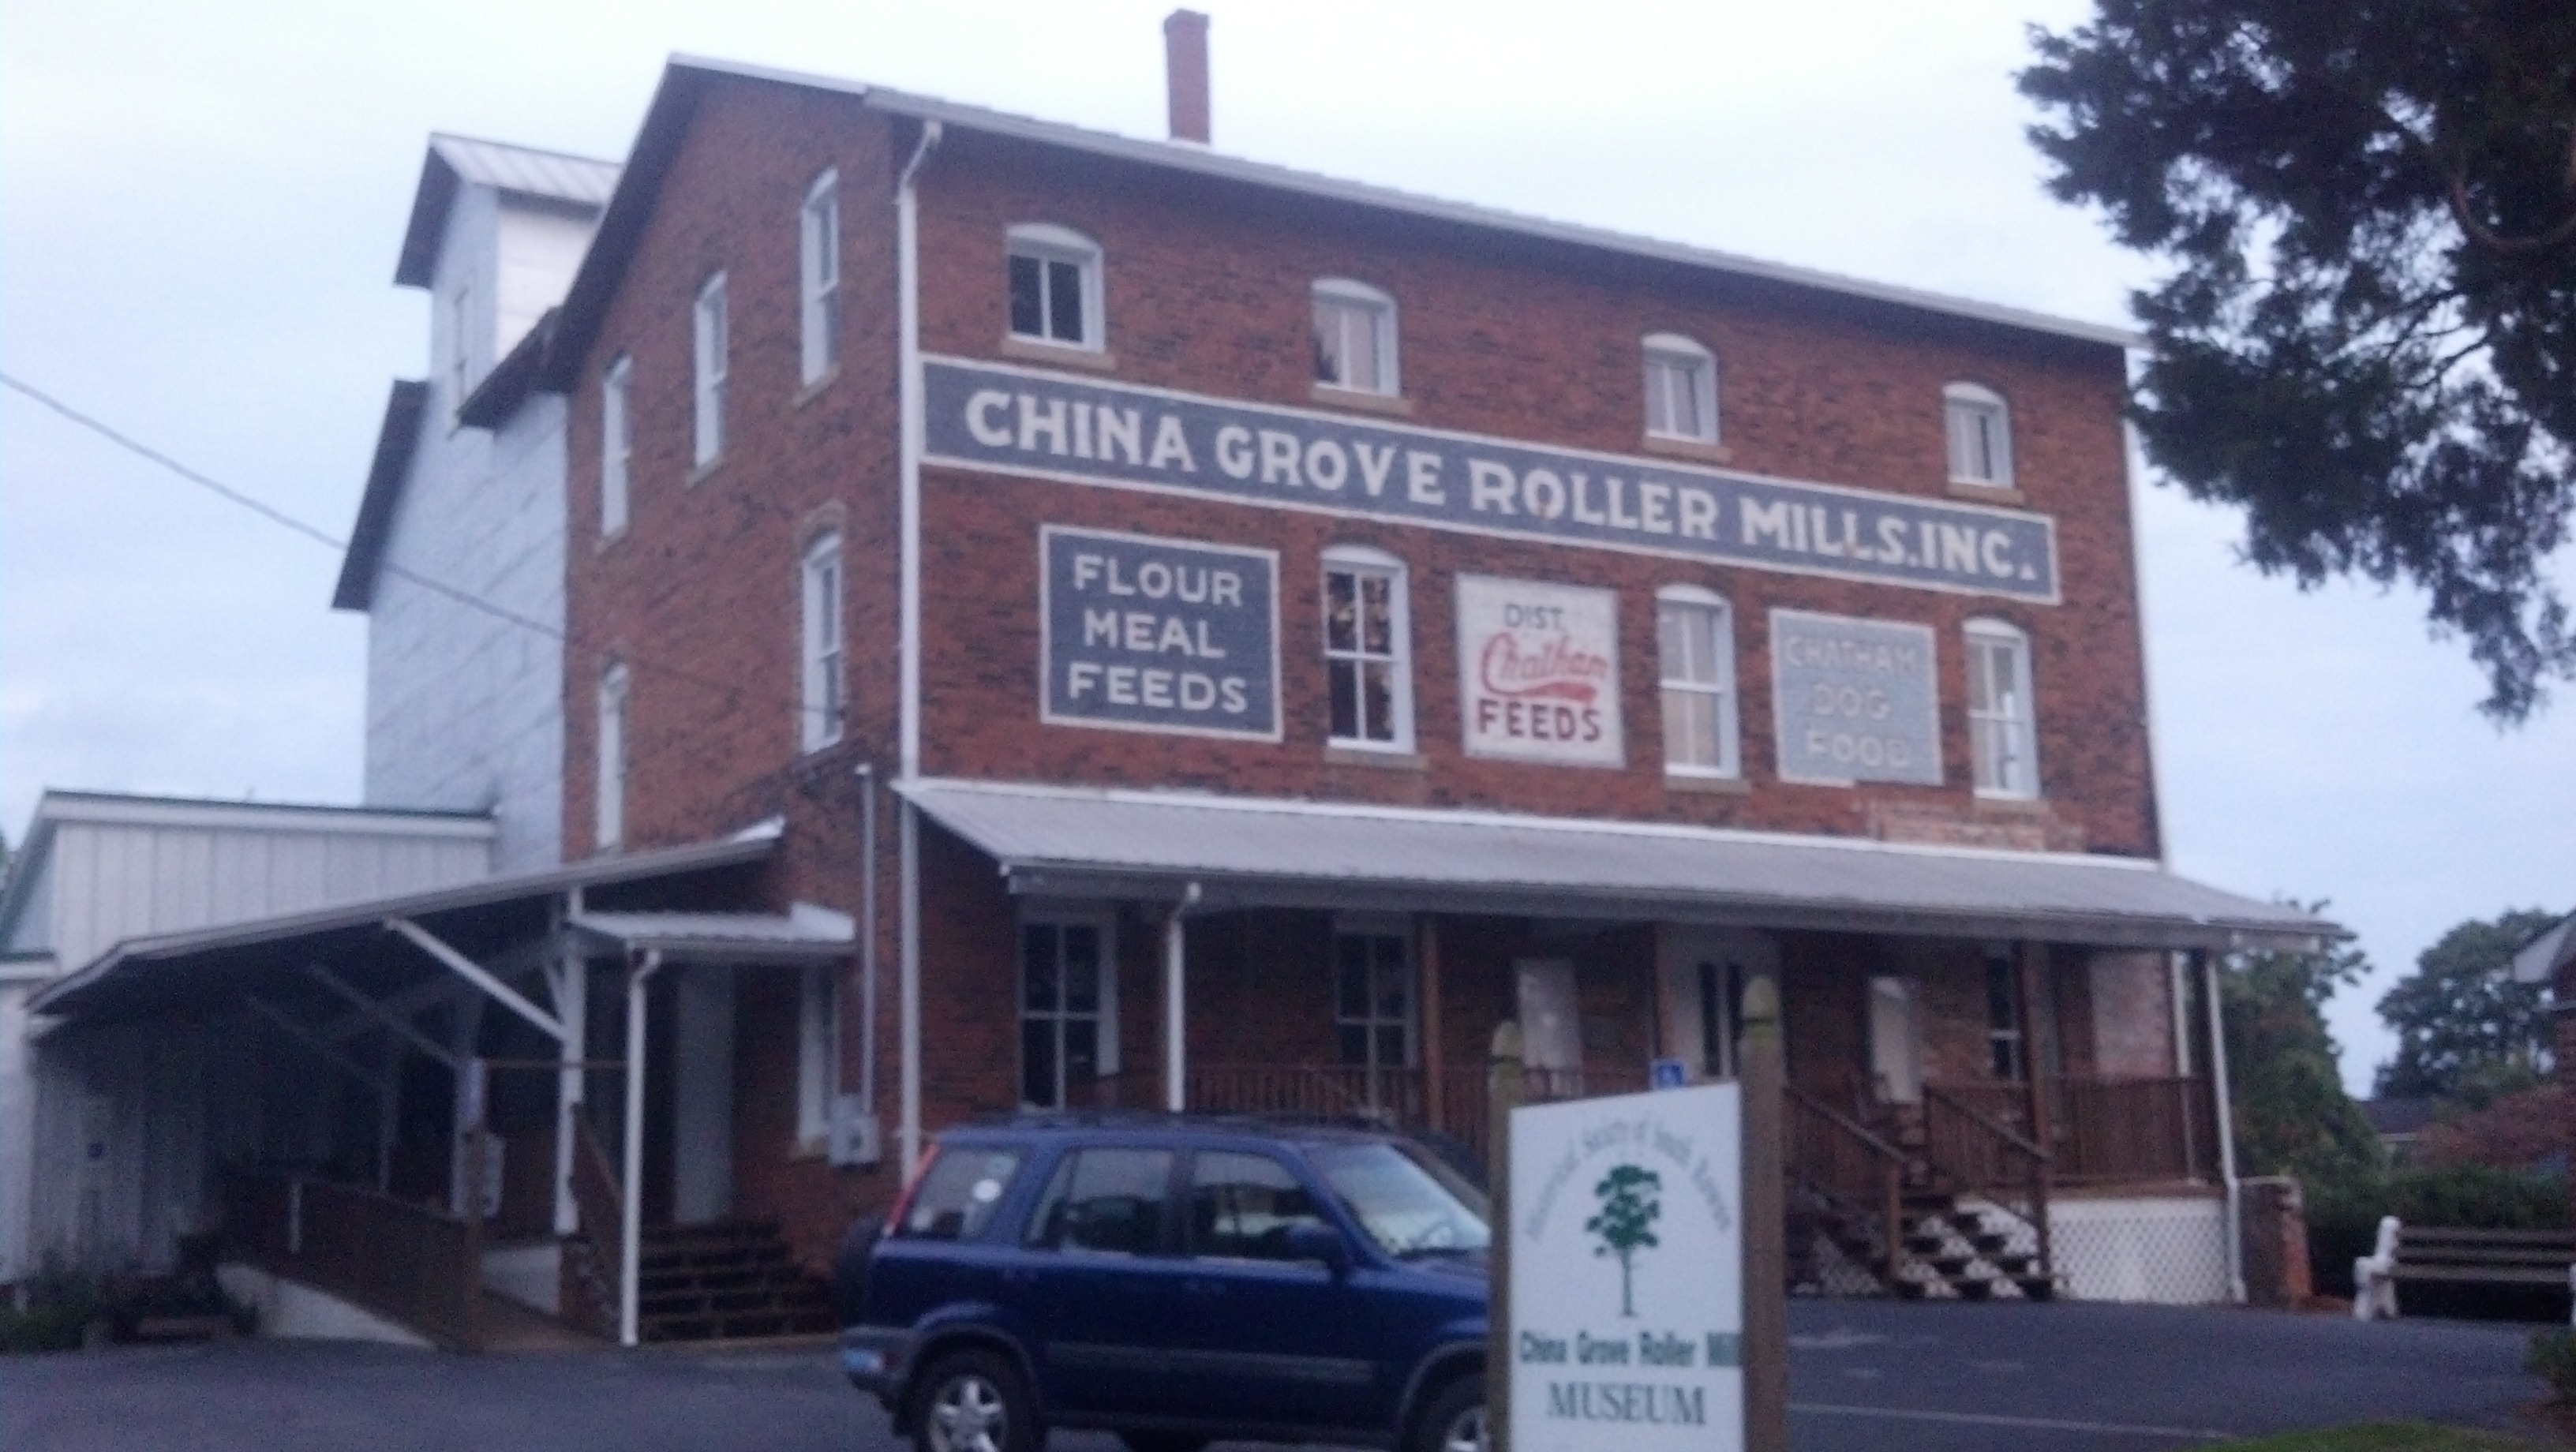 china grove chat Chinaberry commons, 2bd 2ba, 1st floor apartment apartment for rent in china grove close to dining and shops, bright, gas stove, trash included.